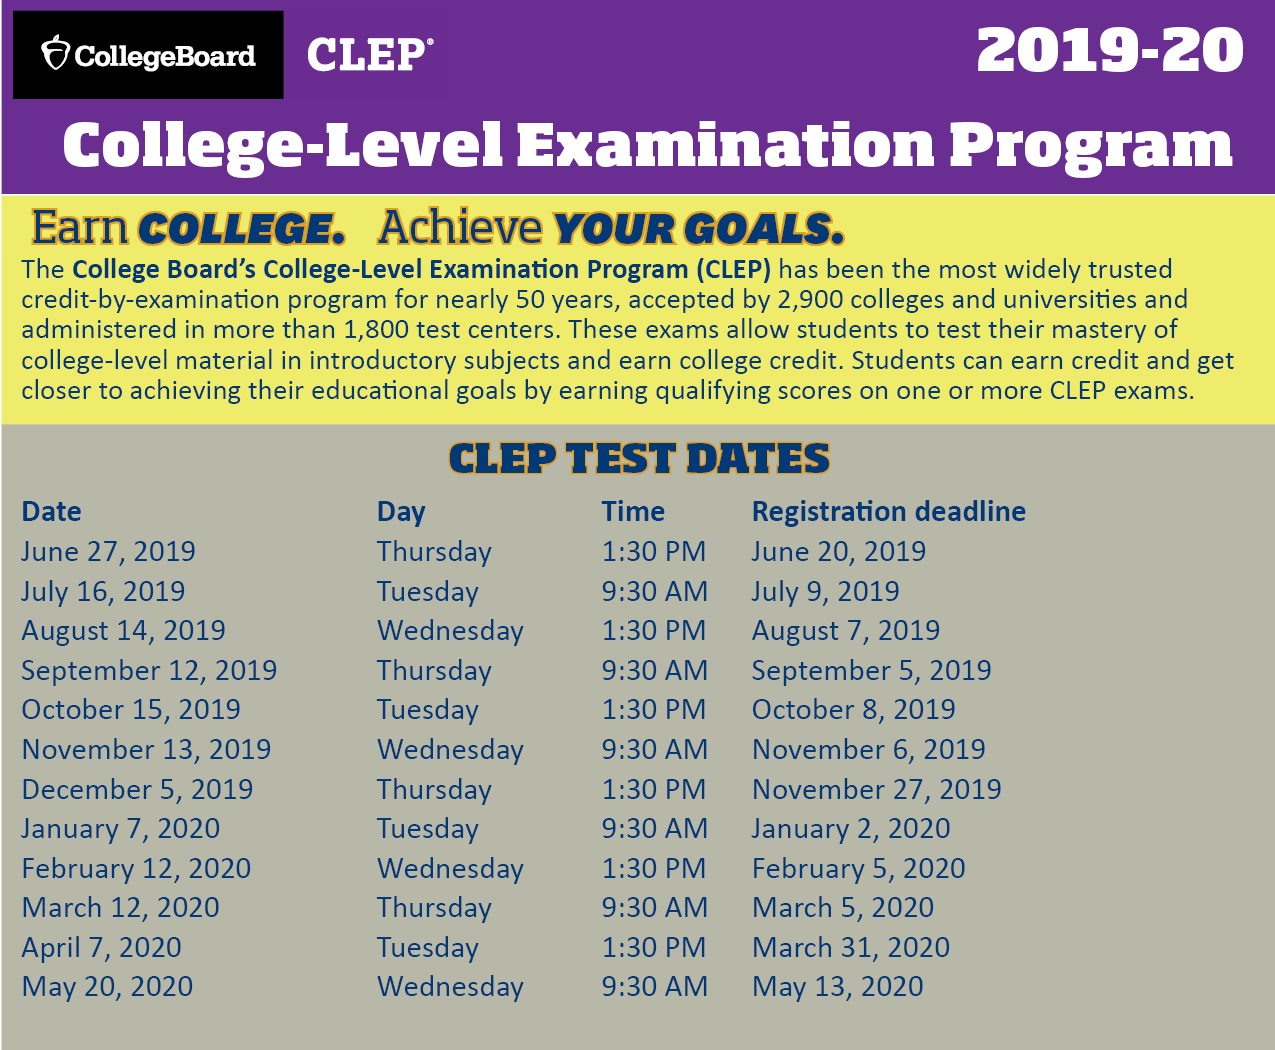 Clep Dates 2019-20